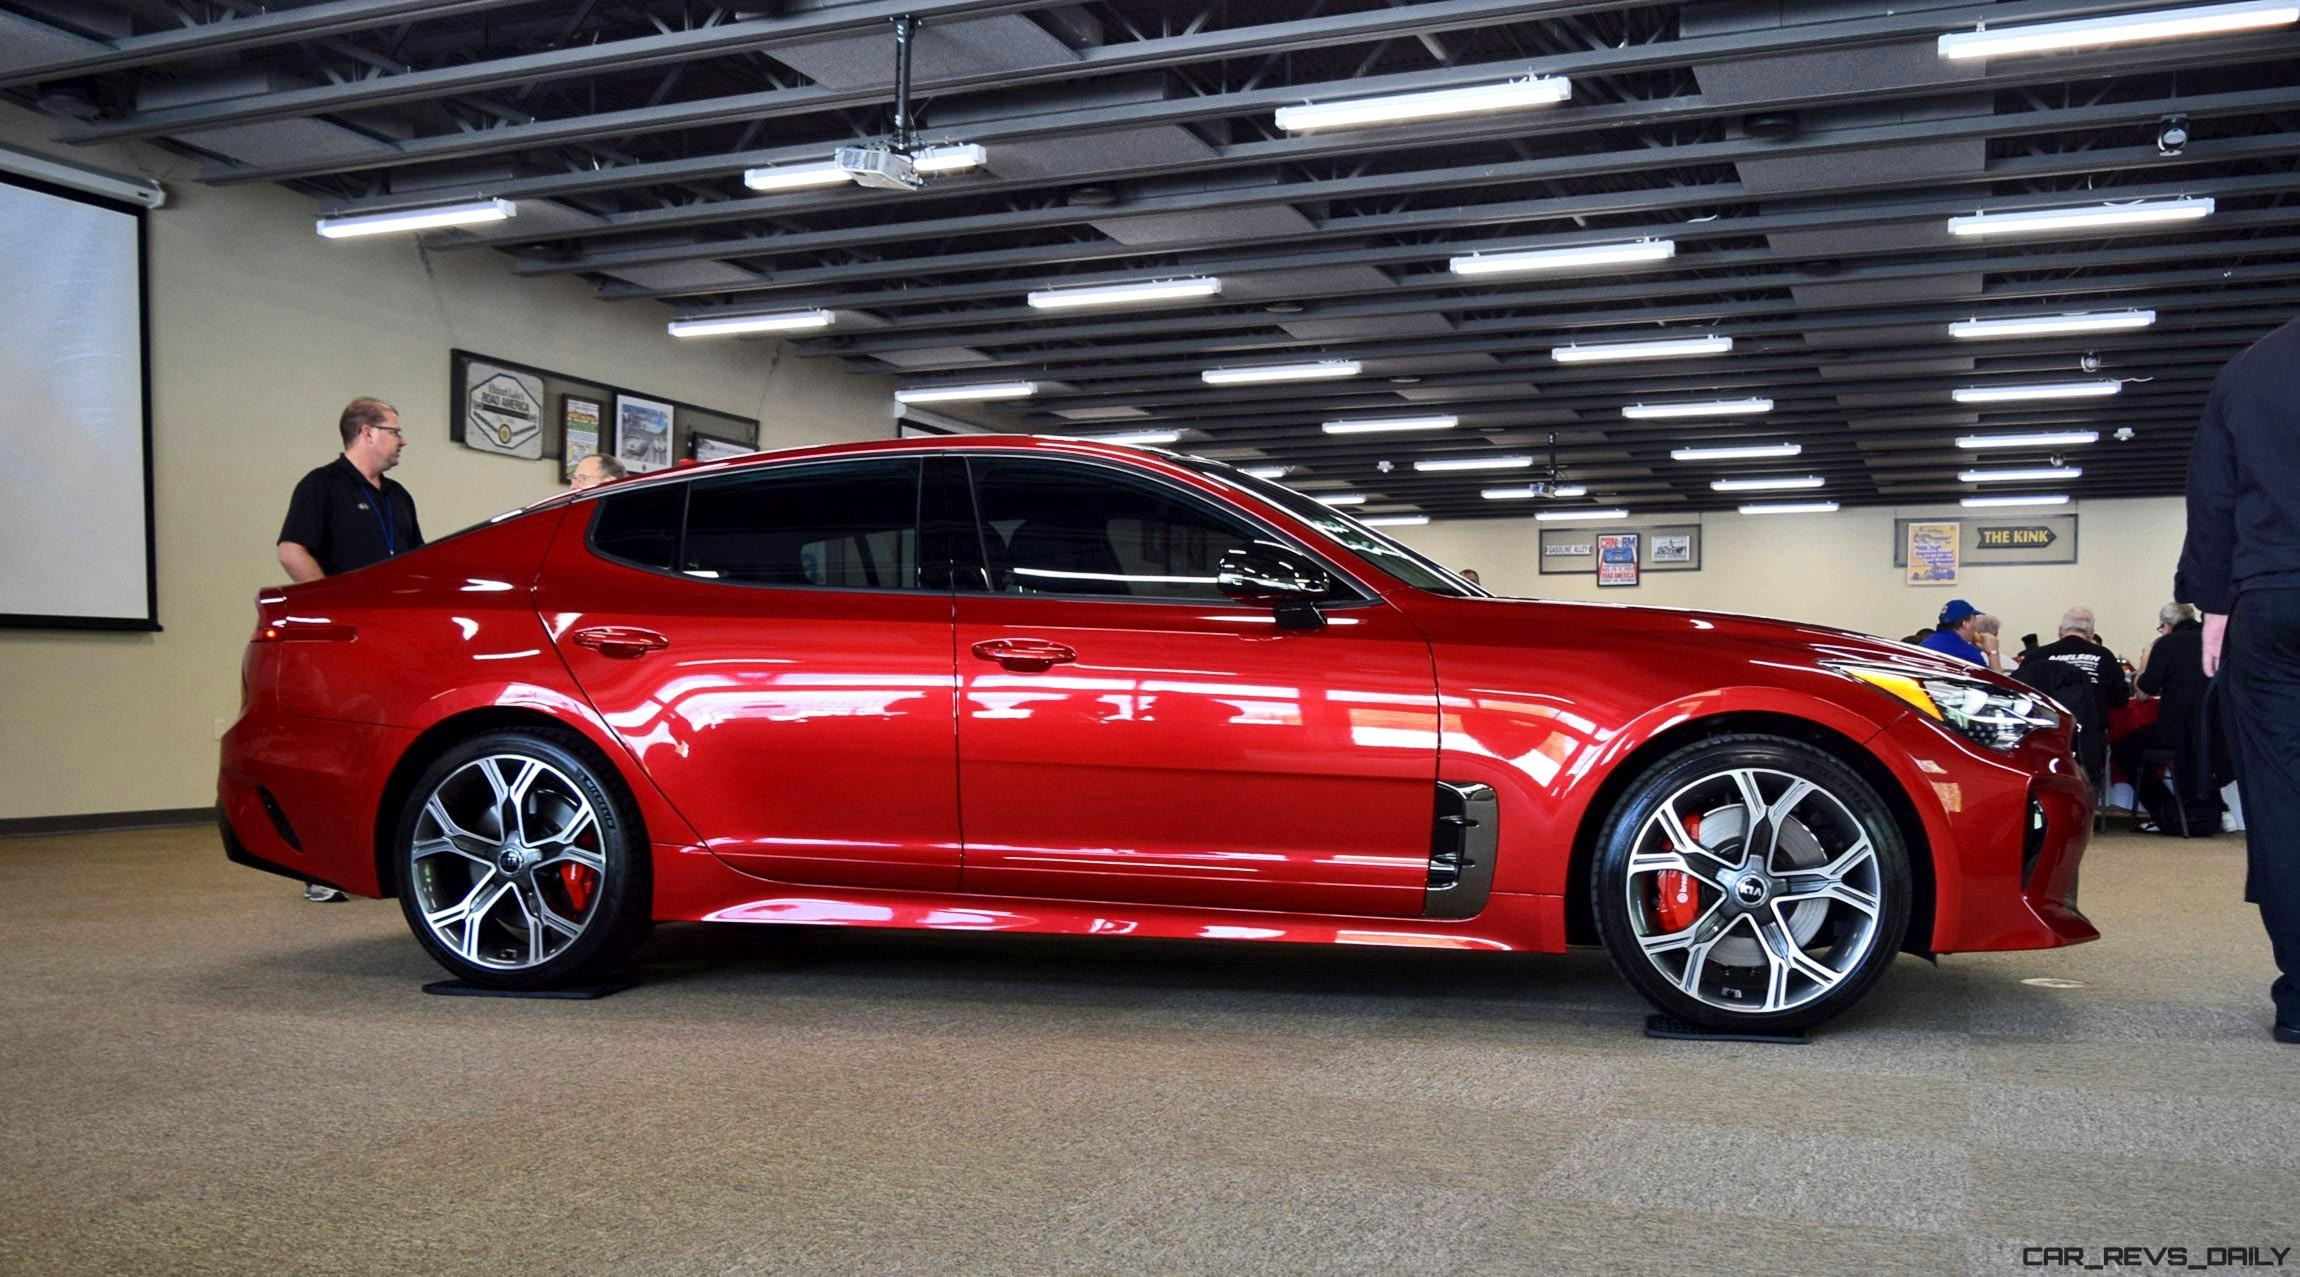 2018 Kia Stinger Gt Awd 4 8s 167mph Stats Confirmed 31 Photos